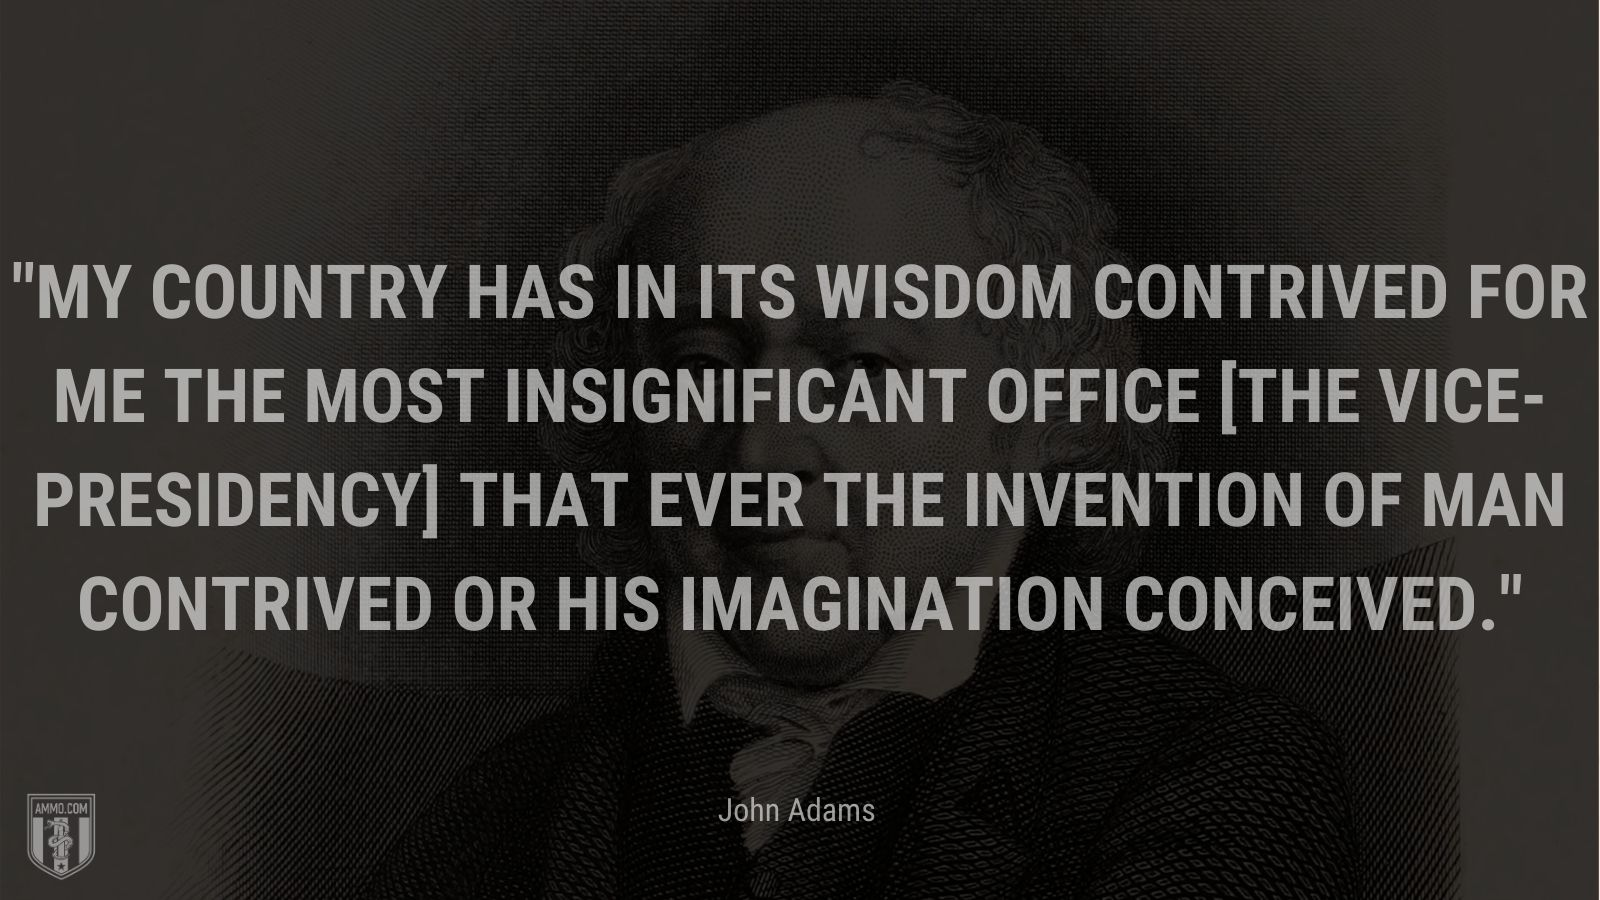 """"""".My country has in its wisdom contrived for me the most insignificant office [the vice-presidency] that ever the invention of man contrived or his imagination conceived."""" - John Adams"""